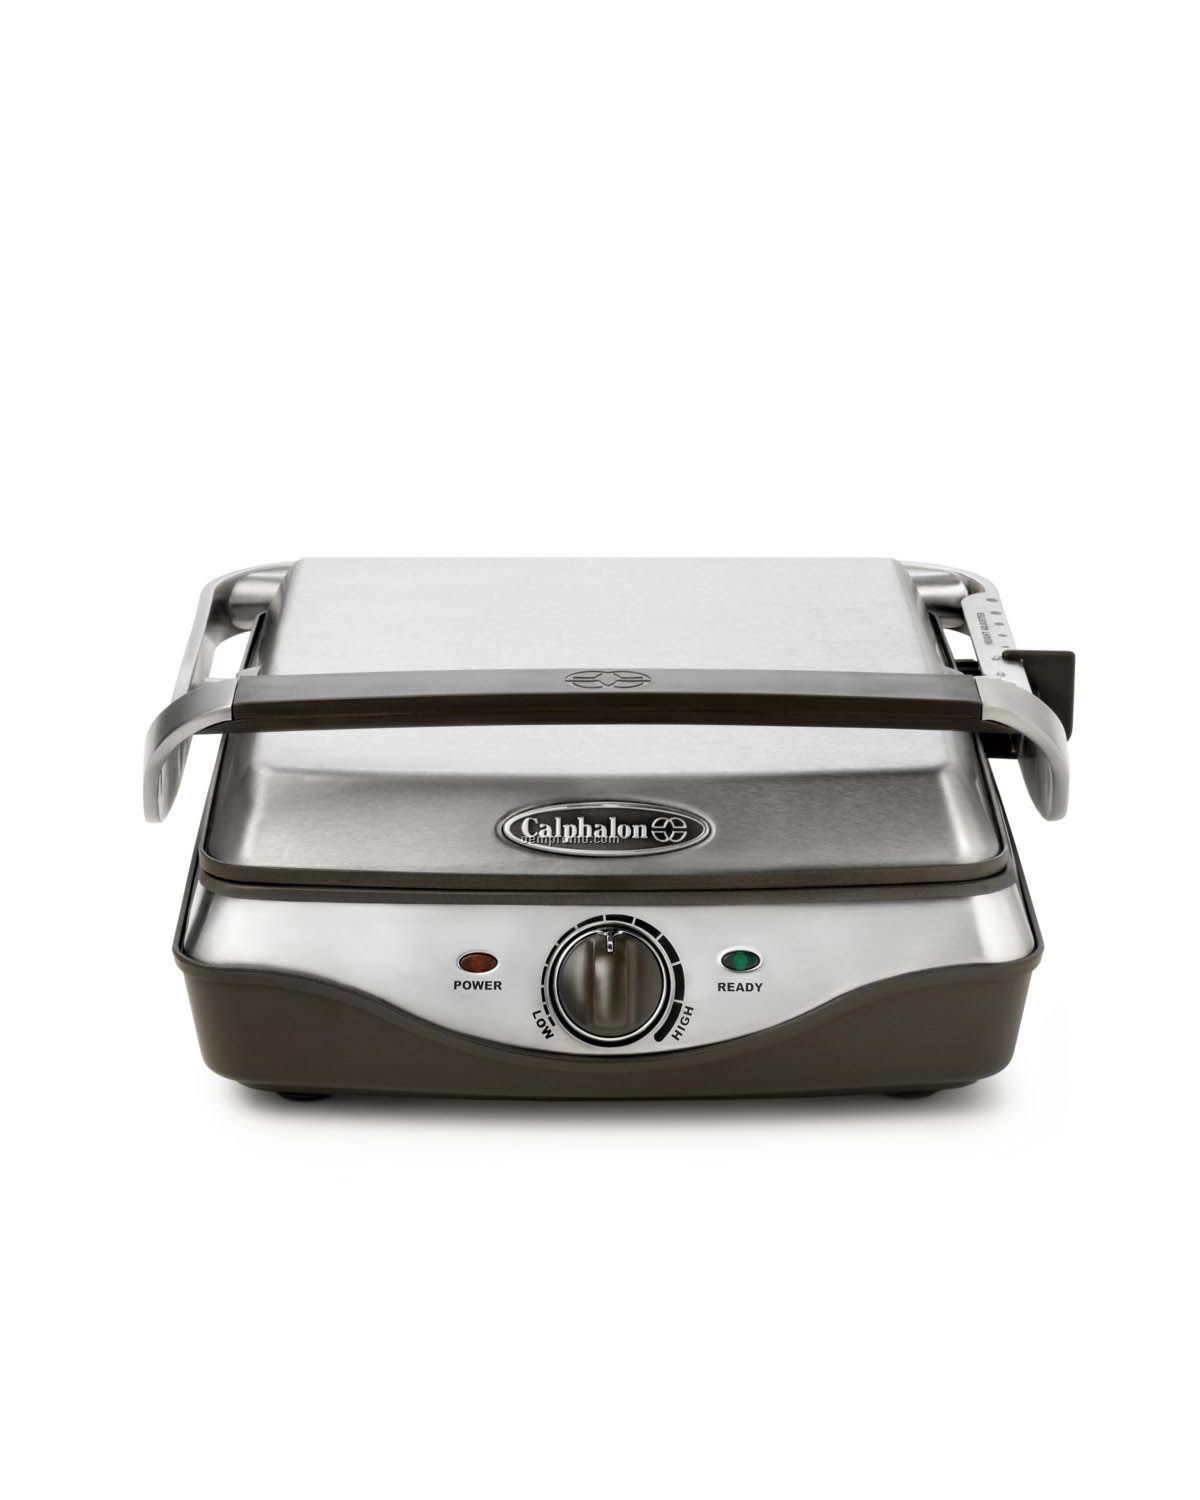 Calphalon Electric Panini Grill W/Opti-heat